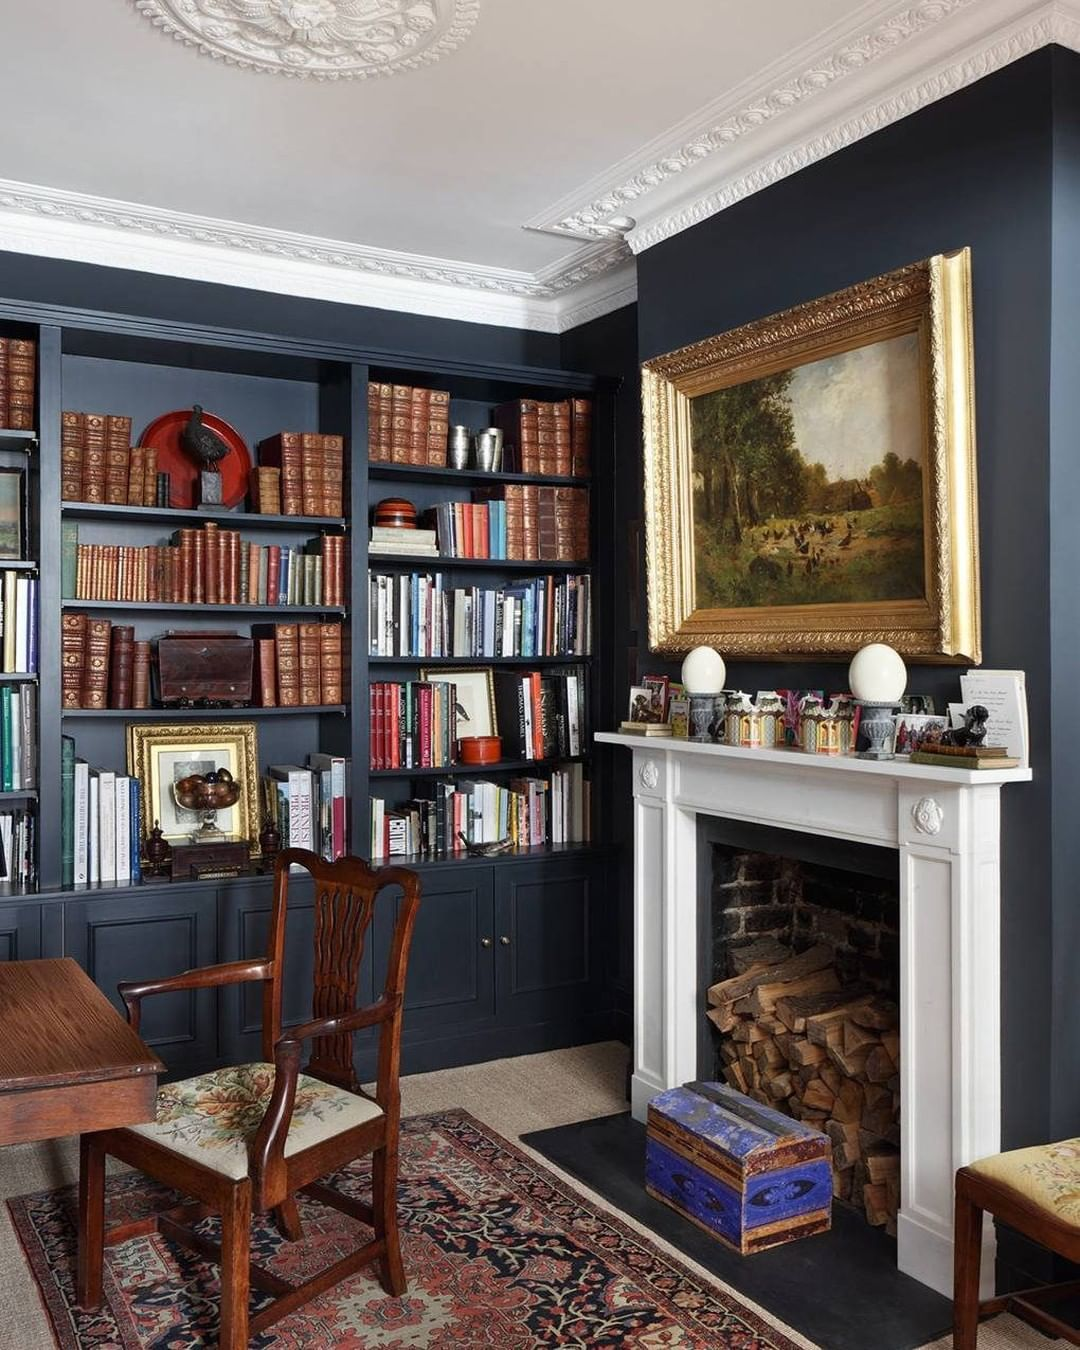 House Garden Magazine On Instagram It Was The Classic Example Of The Worst House On A Good English Living Rooms Living Room Bookcase Victorian Living Room